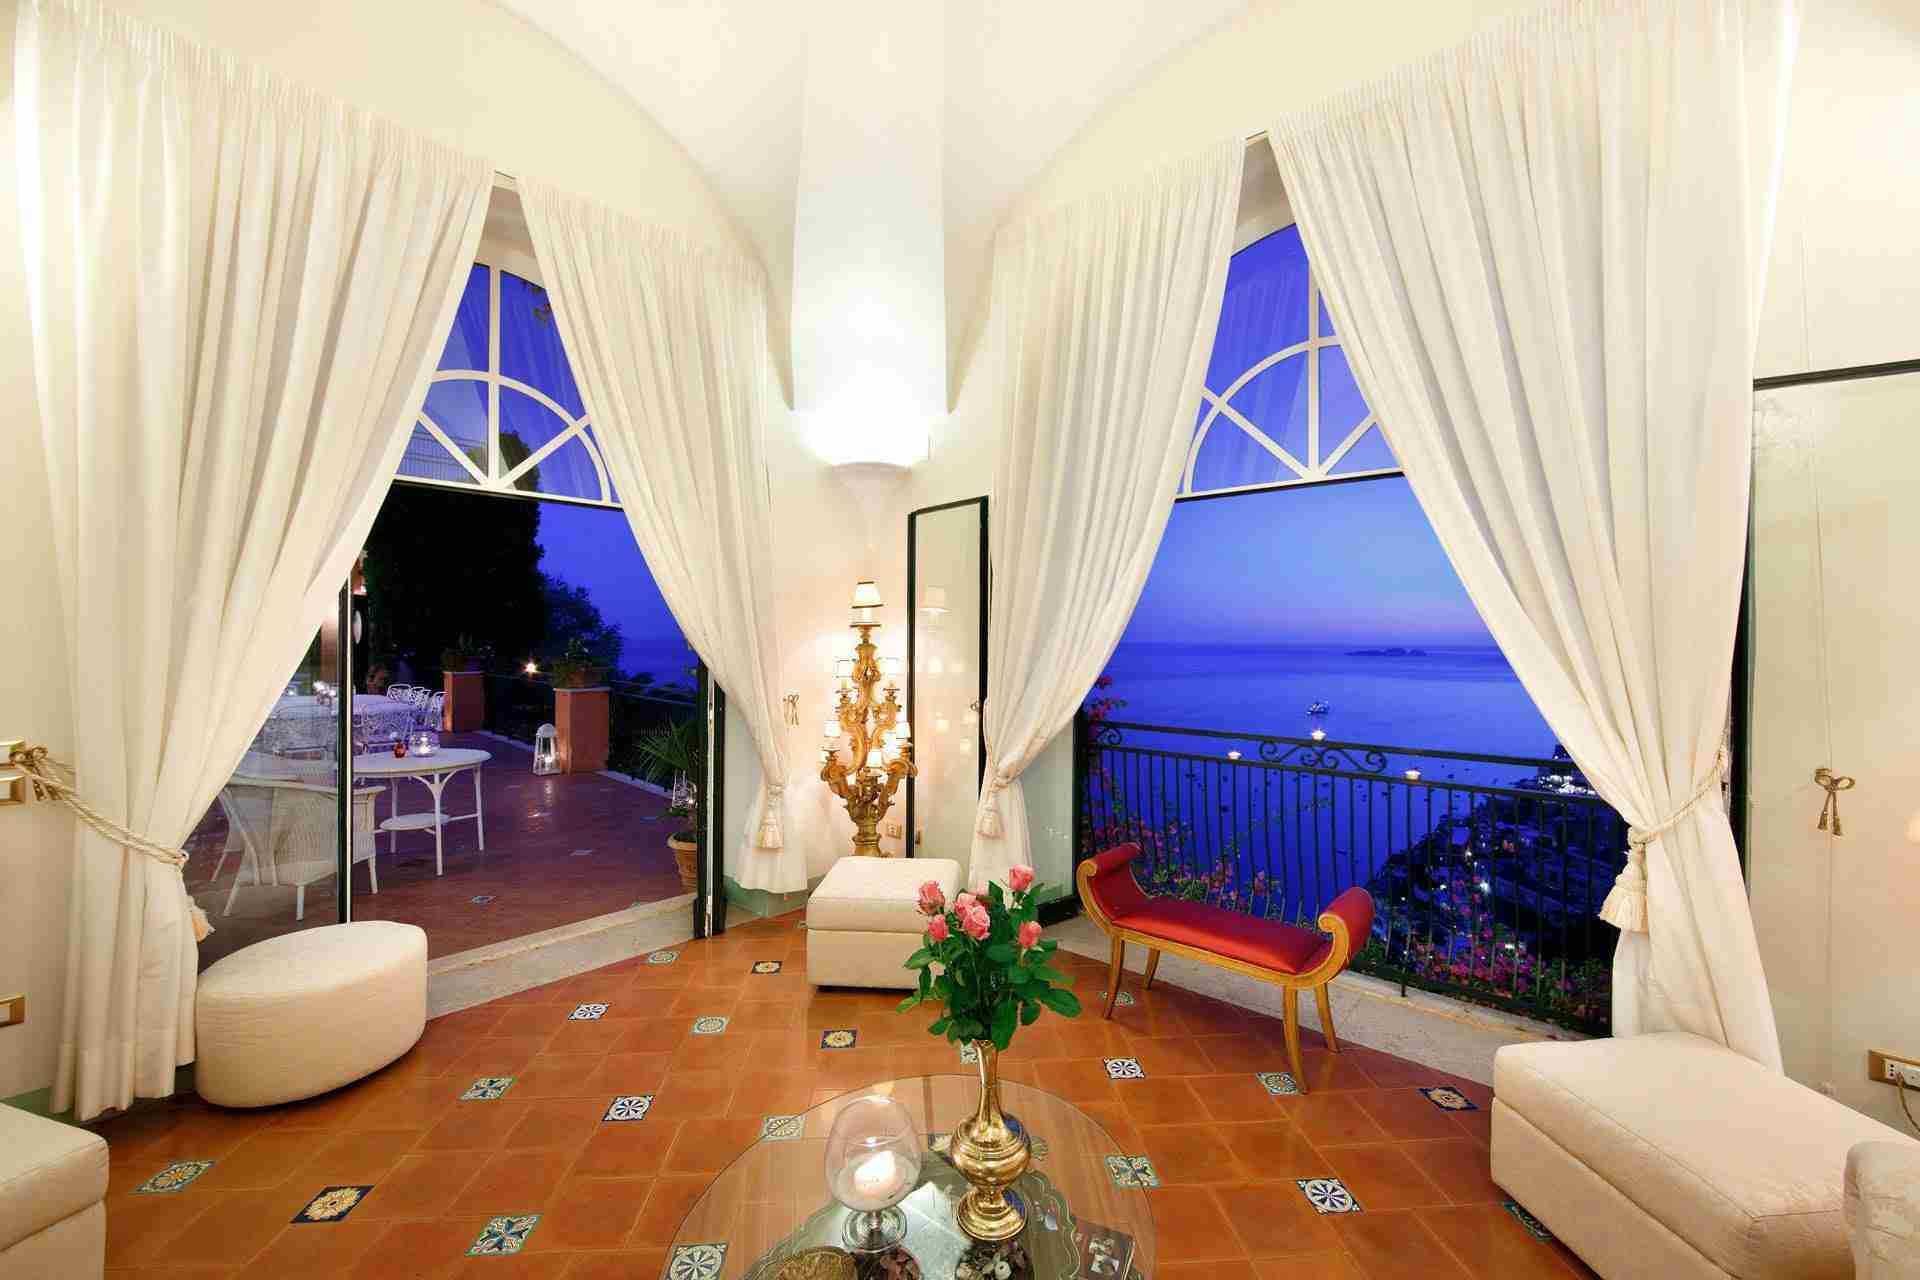 30 Positano night view